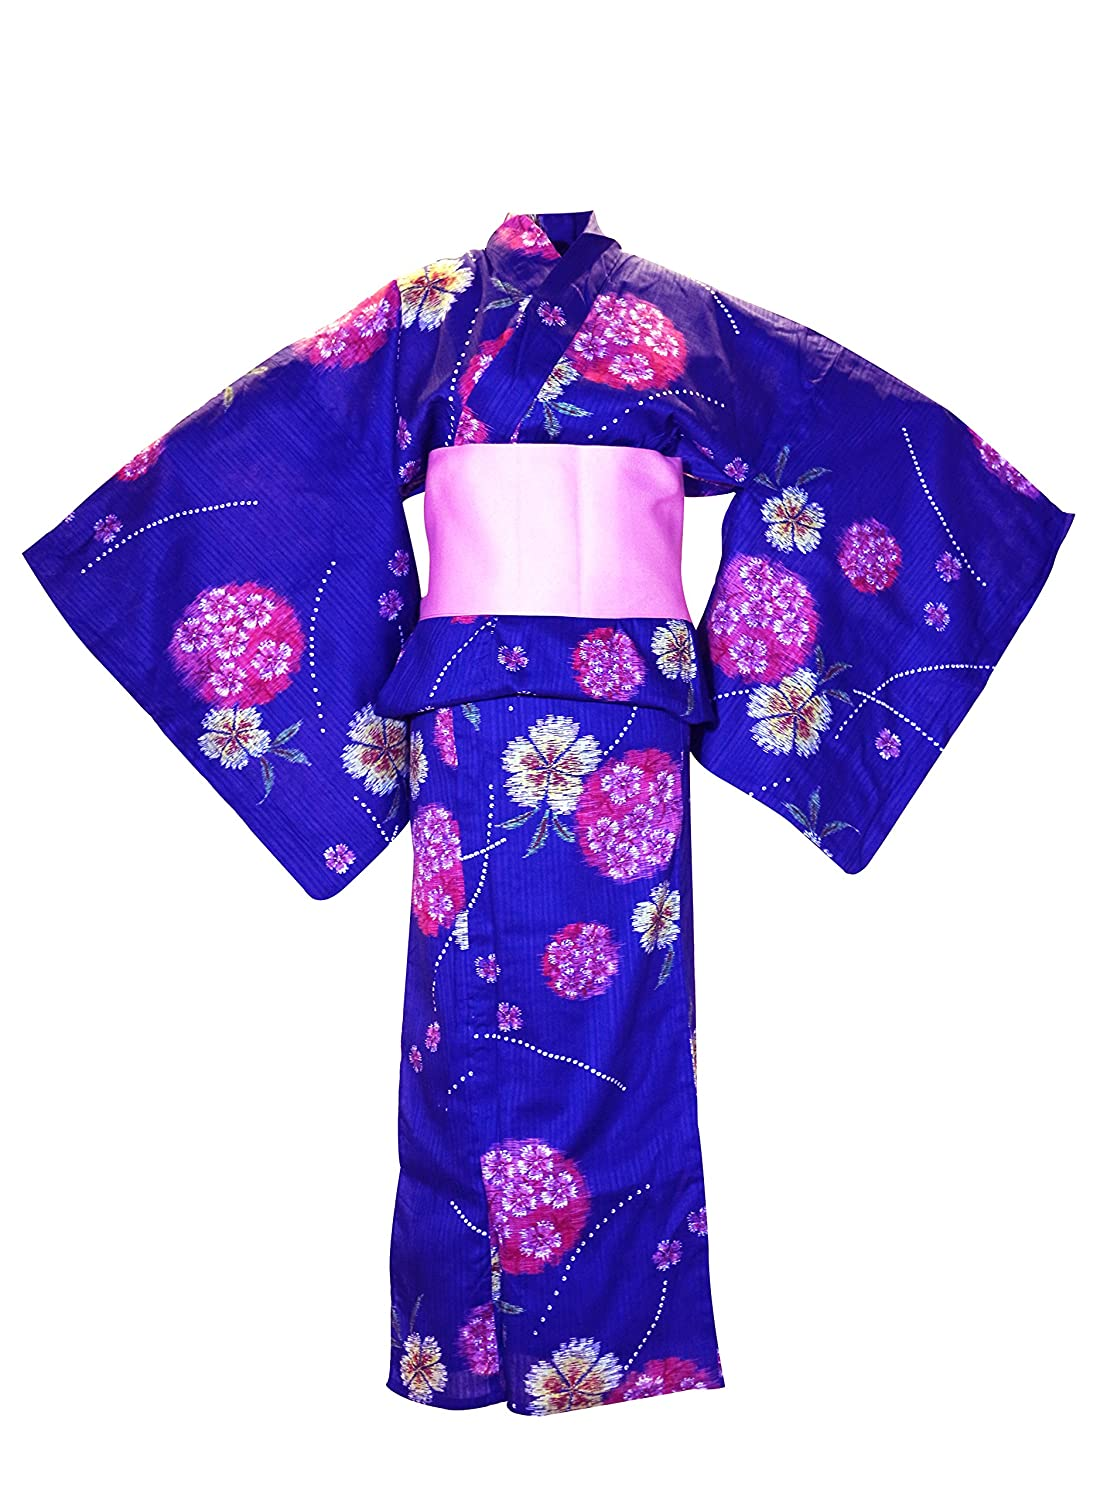 myKimono Women's Traditional Japanese Kimono Robe Yukata 504 with Pink OBI Belt / Blue with Flower Pattern y504